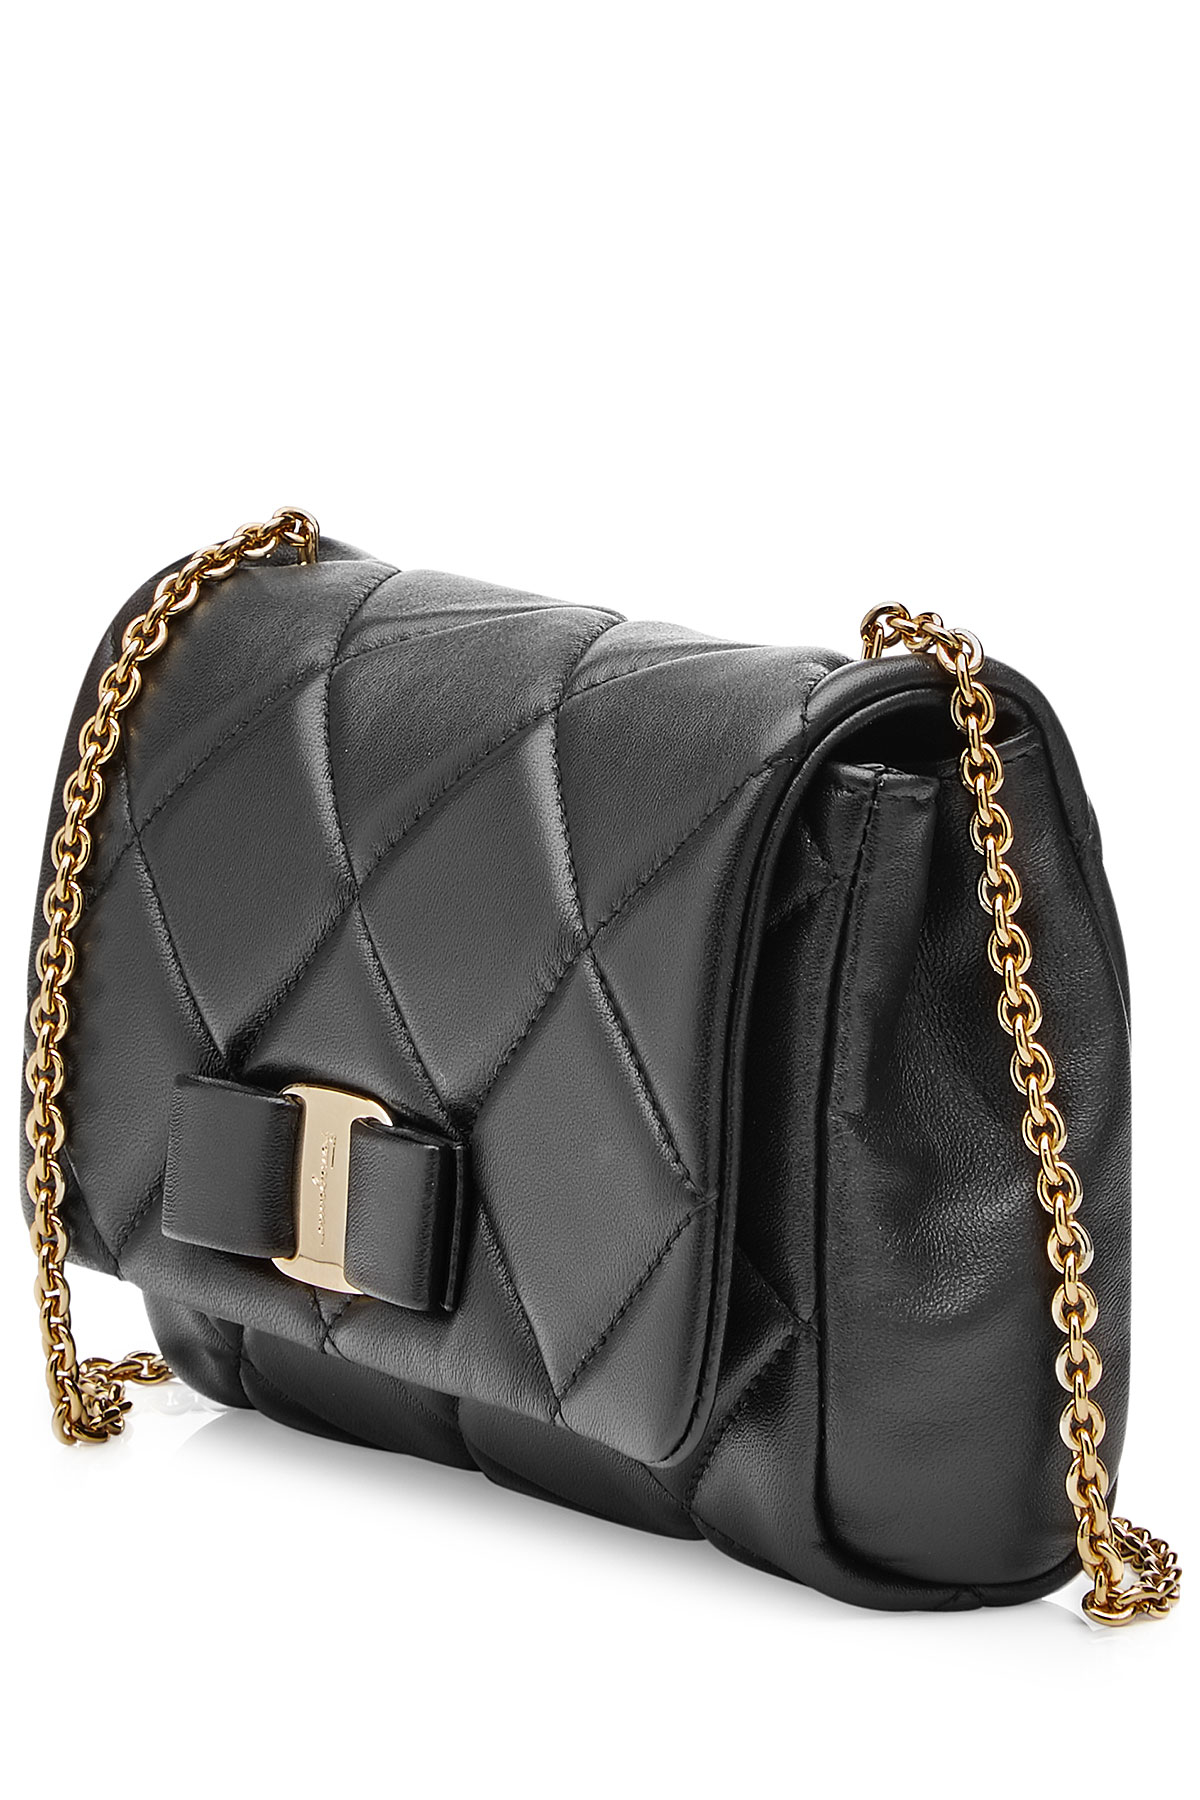 7b27413c0d Lyst - Ferragamo Gelly Mini Quilted Leather Shoulder Bag - Black in ...